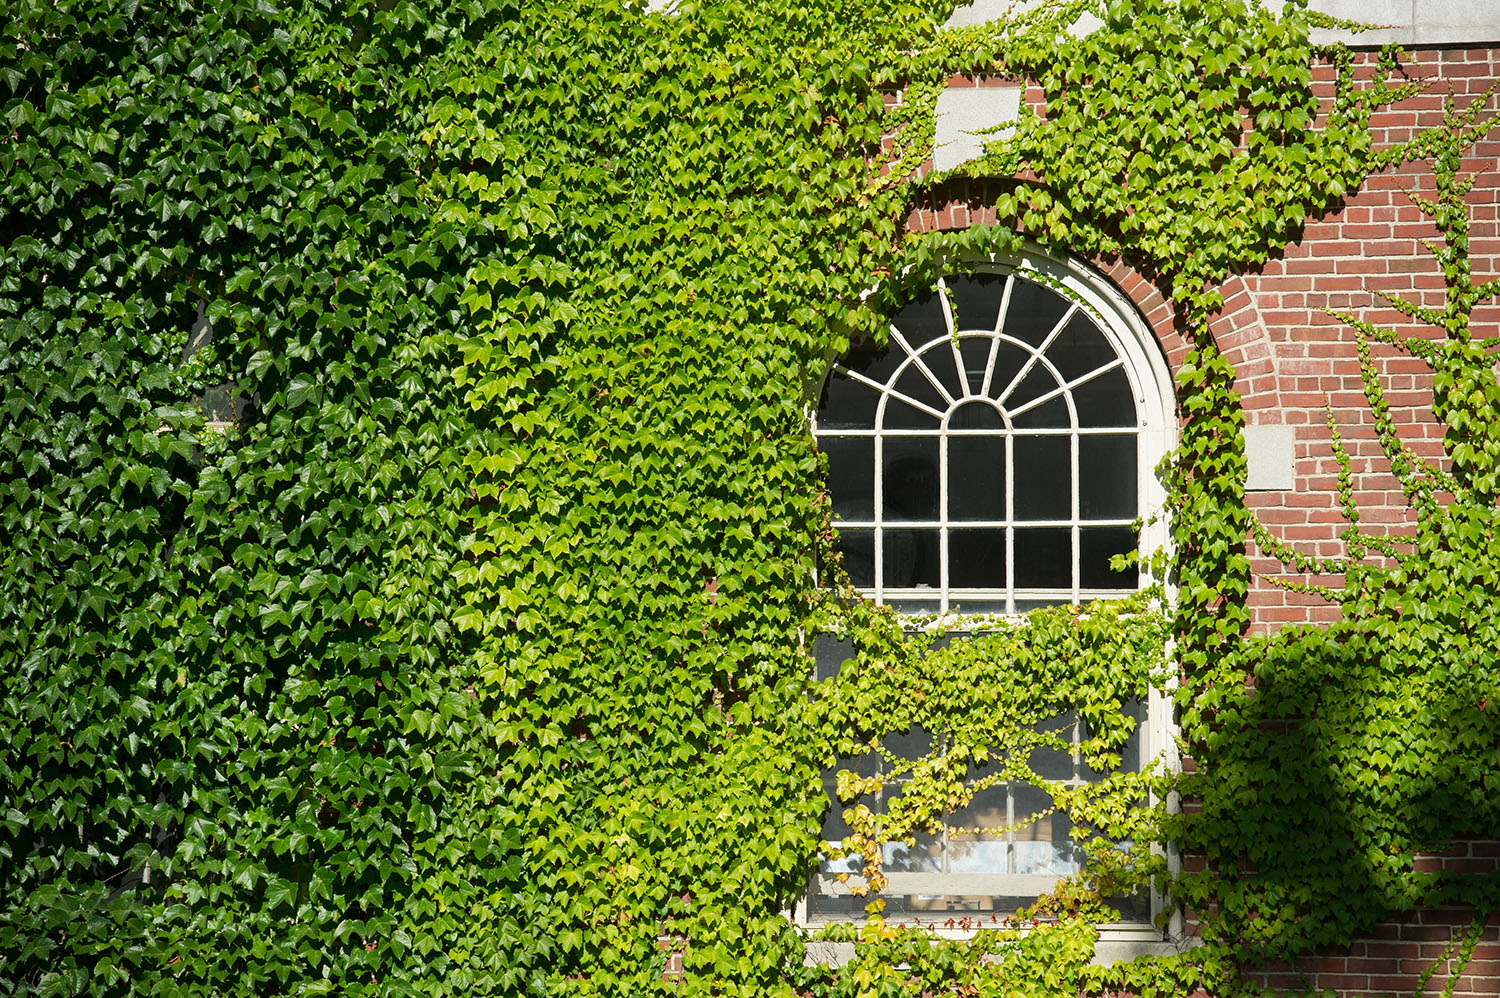 Ivy encroaching on a window at Stevens Hall